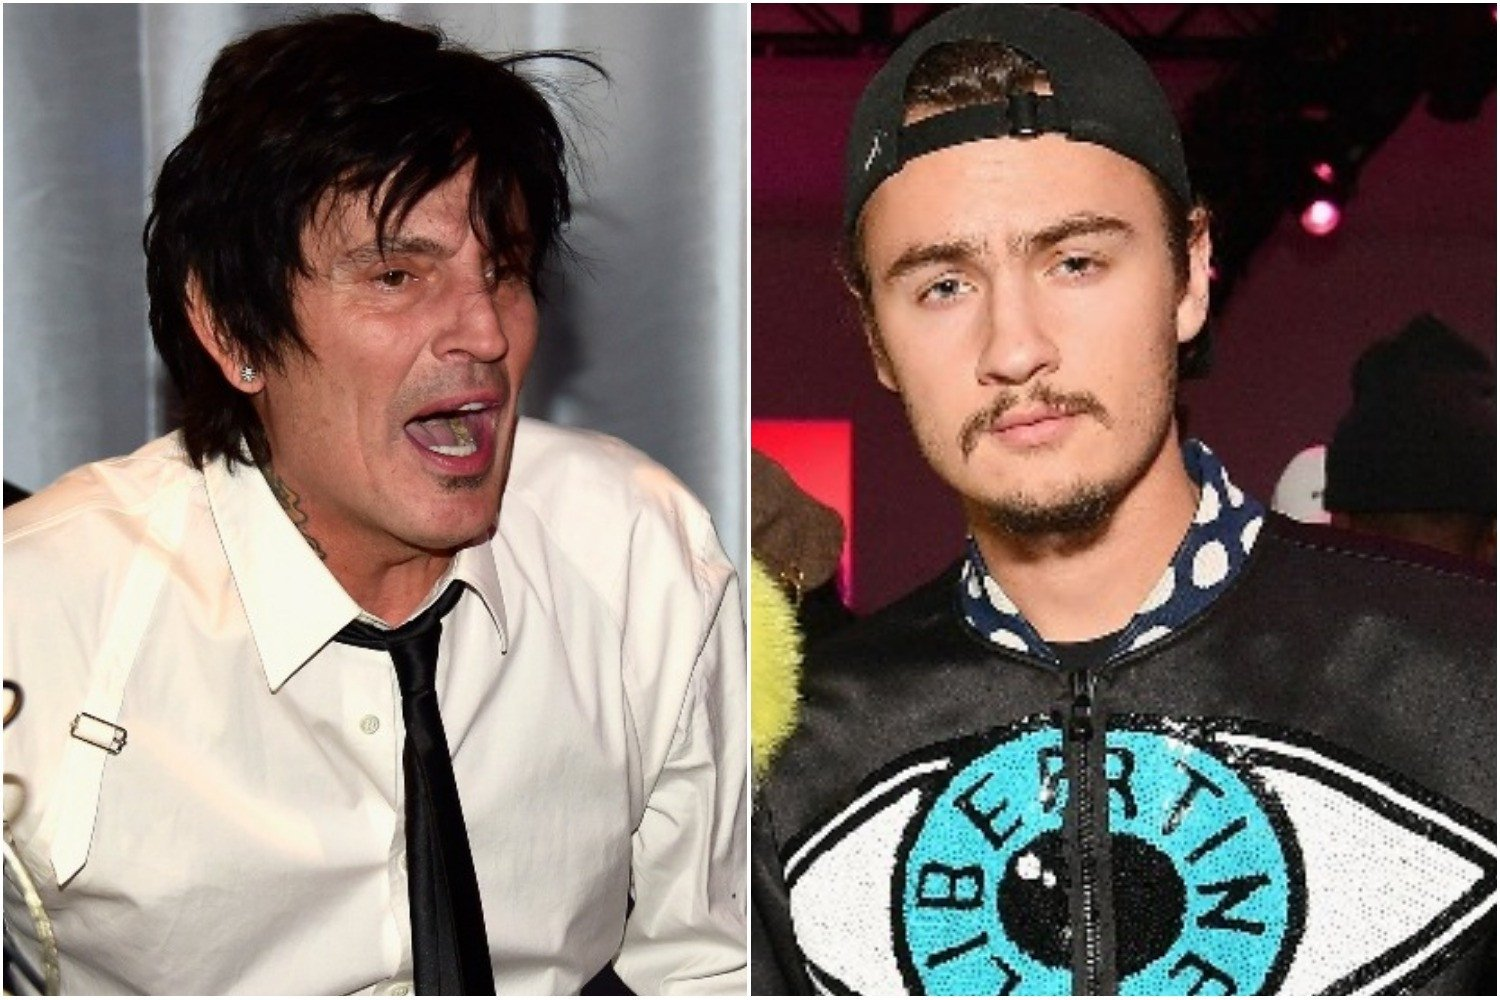 Tommy Lee moving forward with charges against son